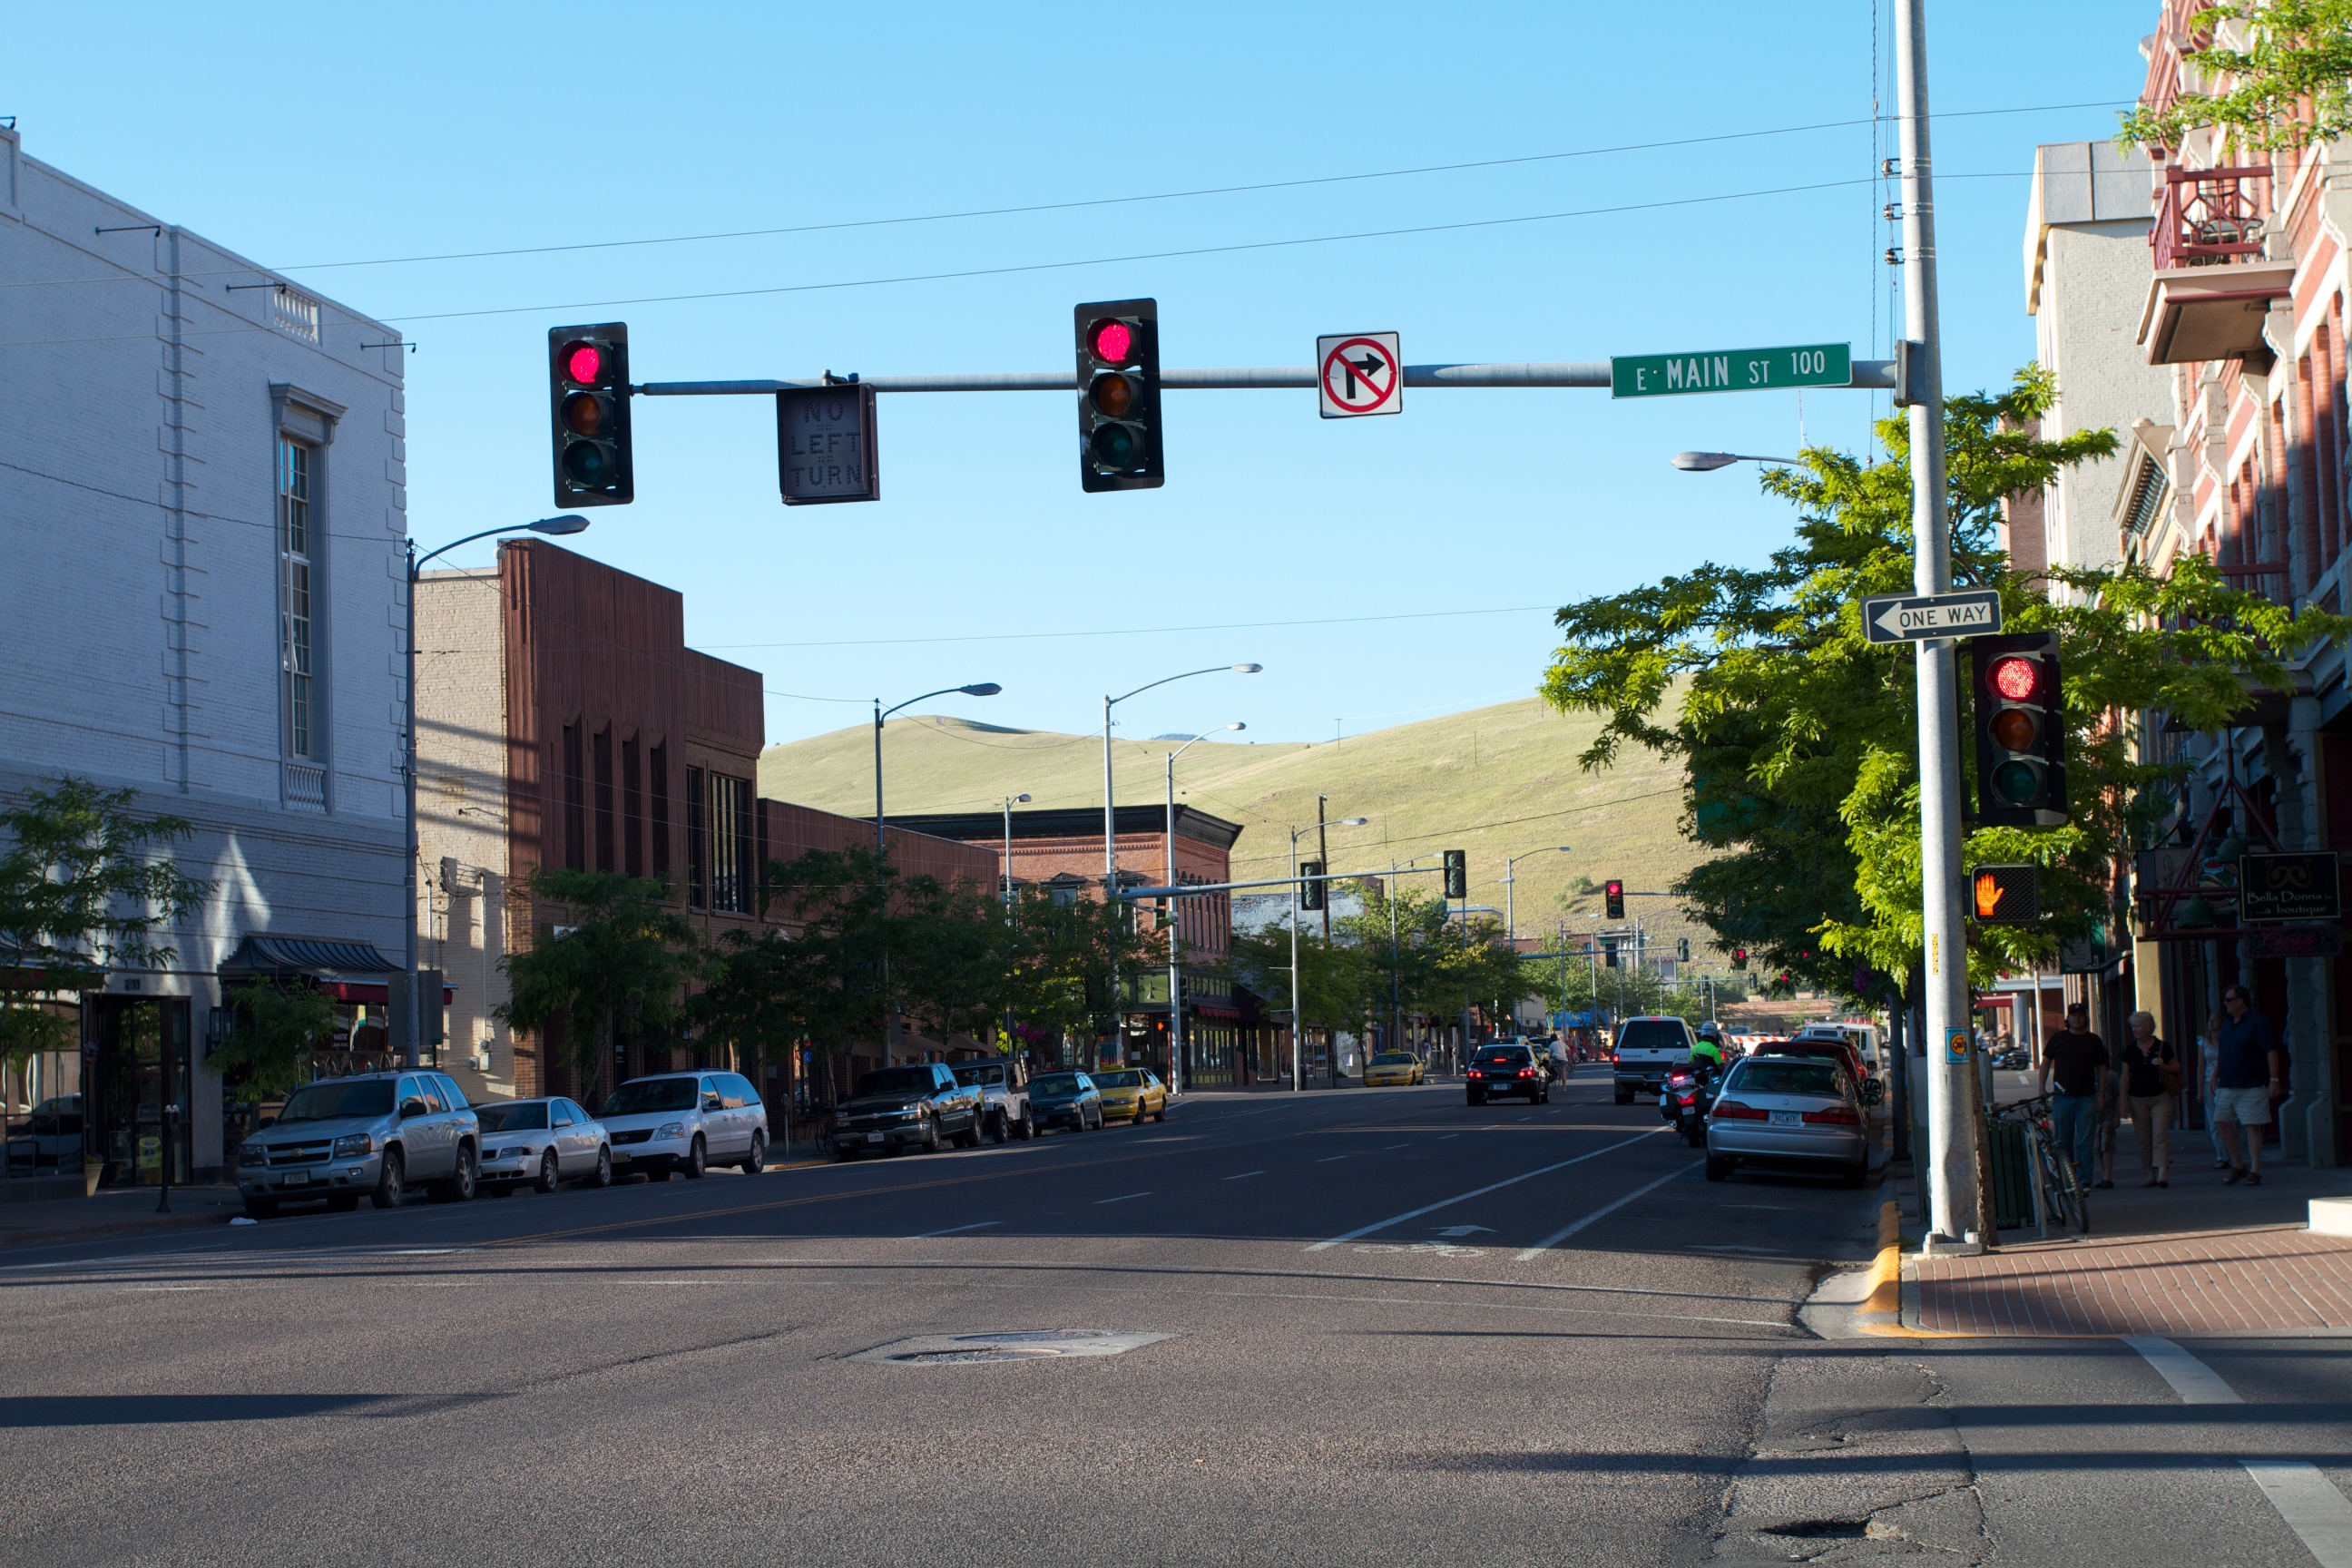 Downtown Missoula, MT